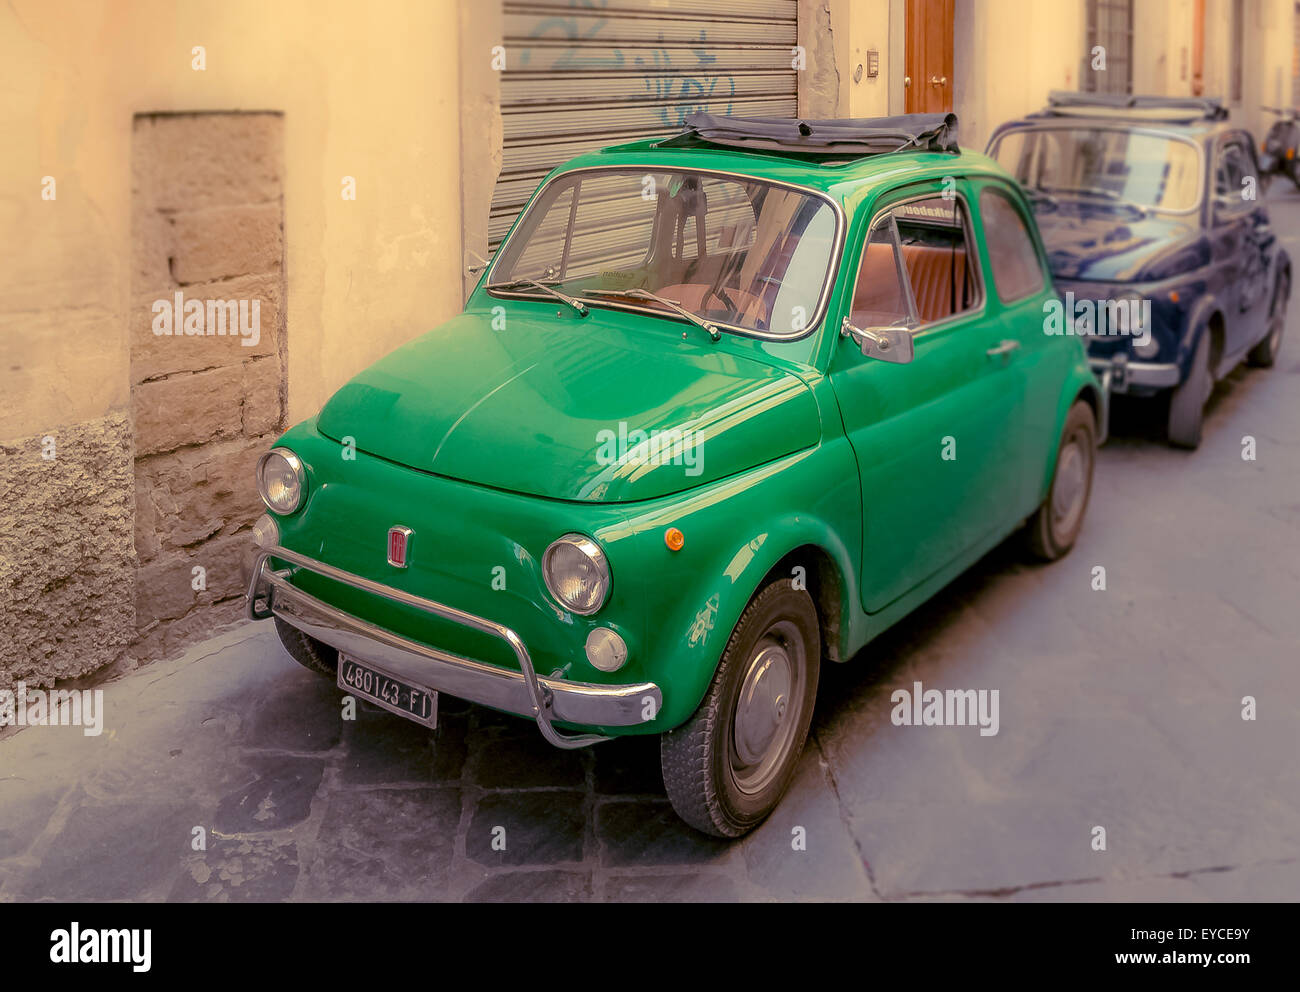 Classic Fiat 500 cars in Florence, italy. - Stock Image